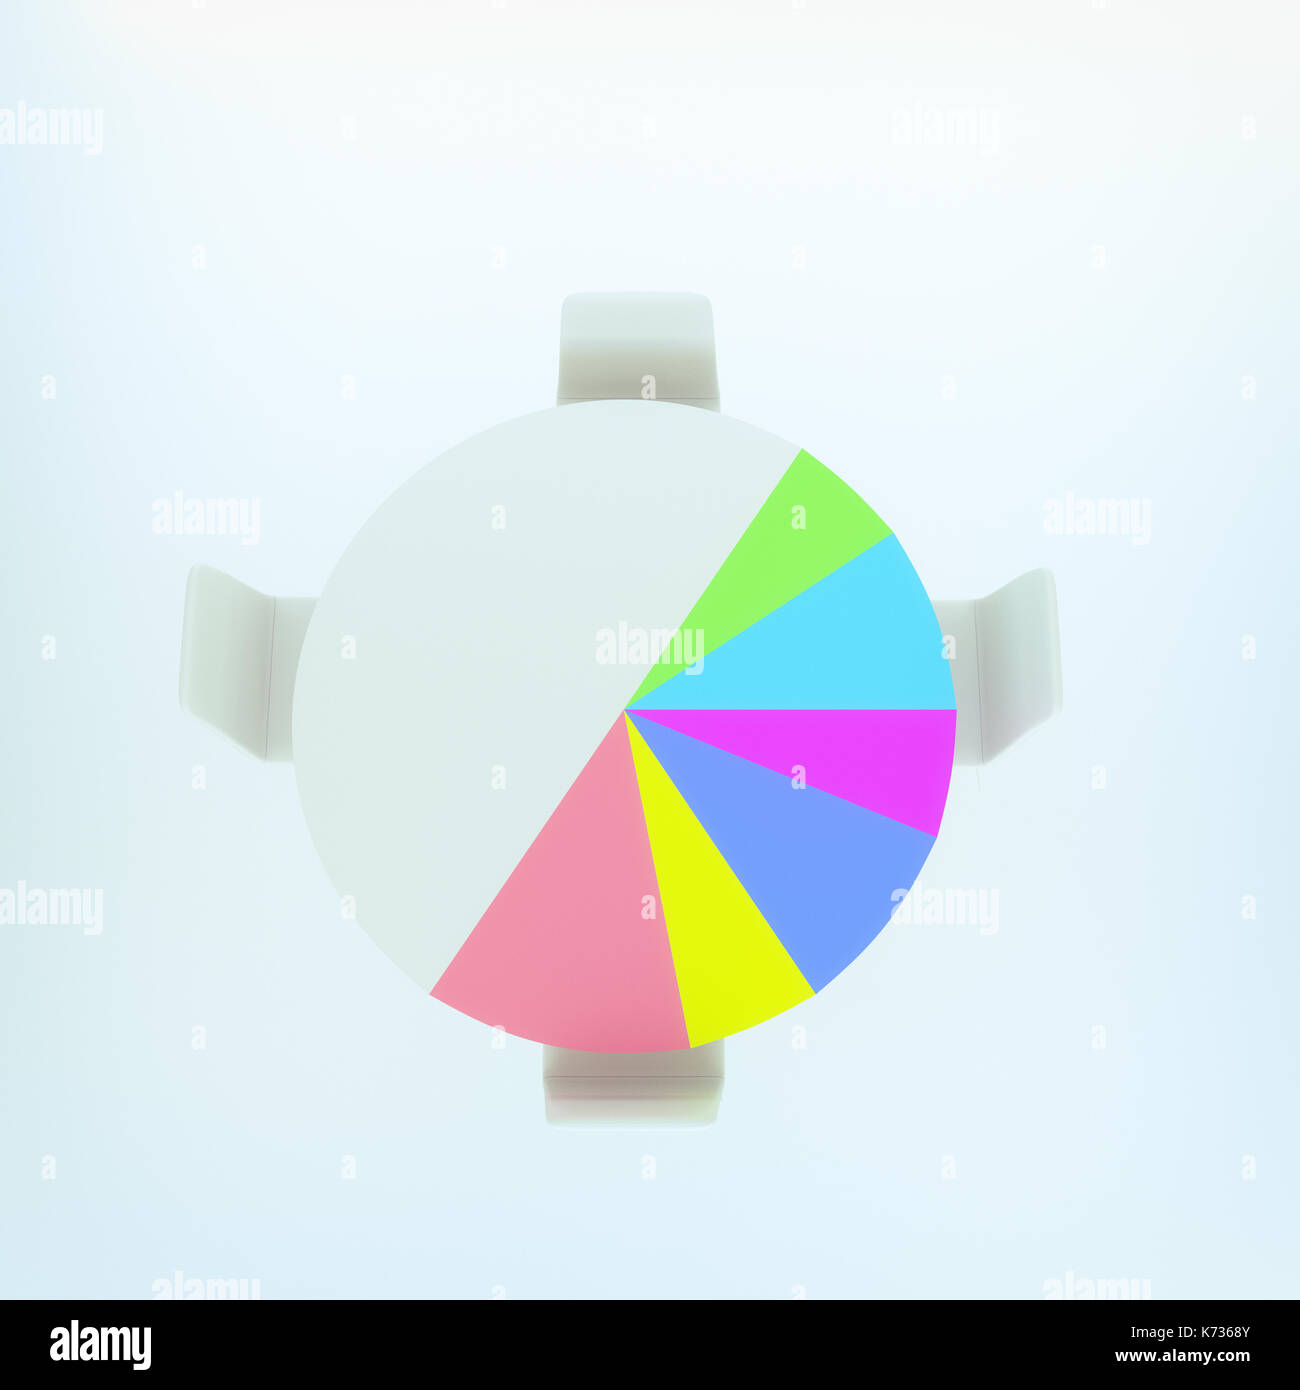 Blue pie chart stock photos blue pie chart stock images alamy 3d rendering of pie chart table with chair stock image nvjuhfo Images